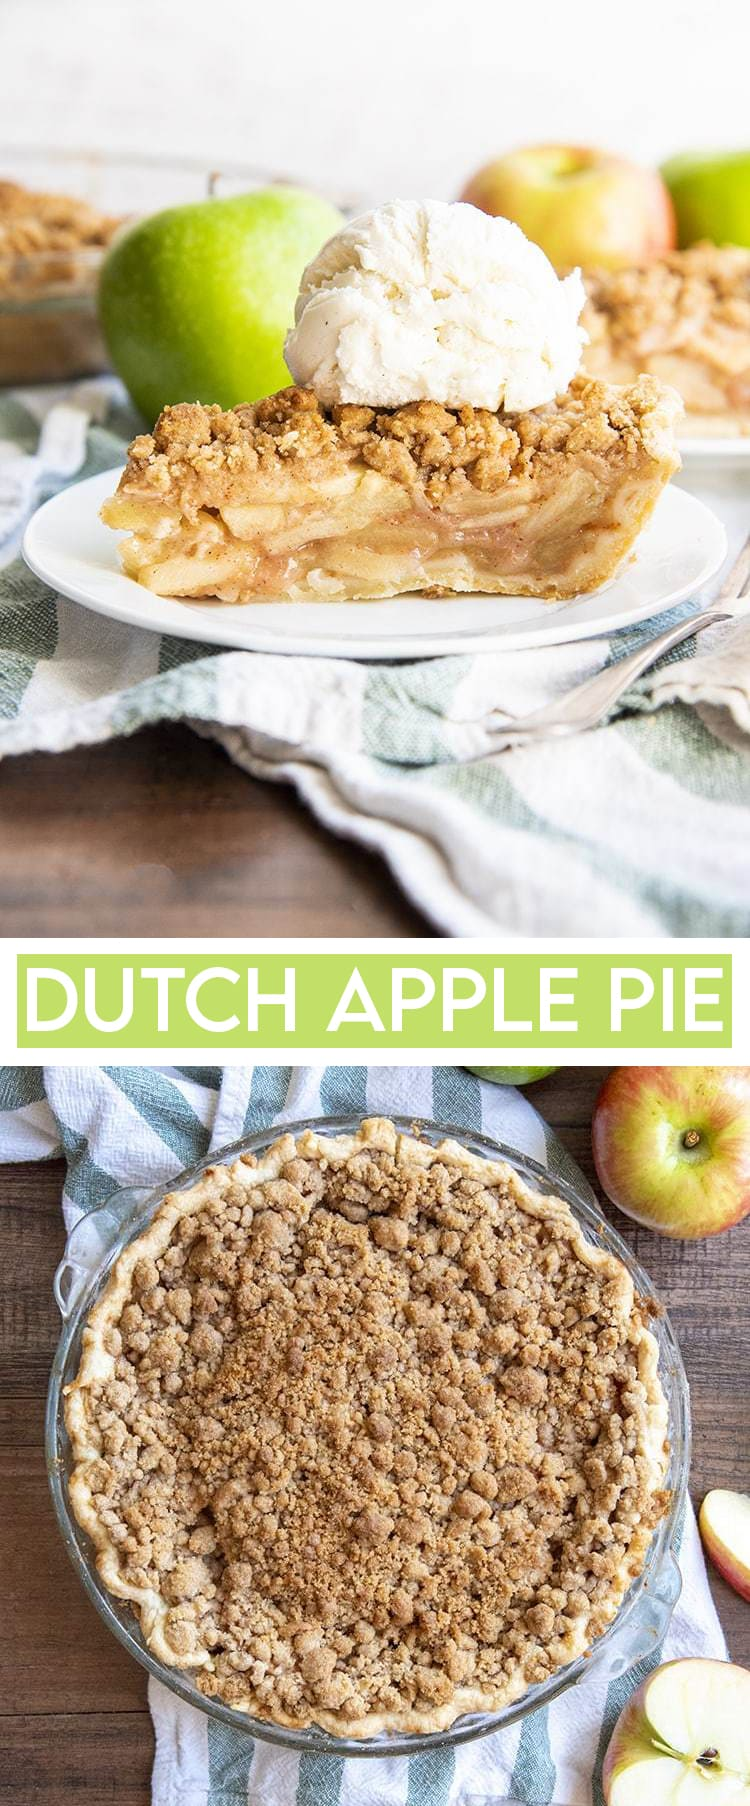 A collage of two photos of dutch apple pie. The first is a slice of dutch apple pie with a scoop of vanilla ice cream on top. The second is the whole pie from above showing the crumb topping.